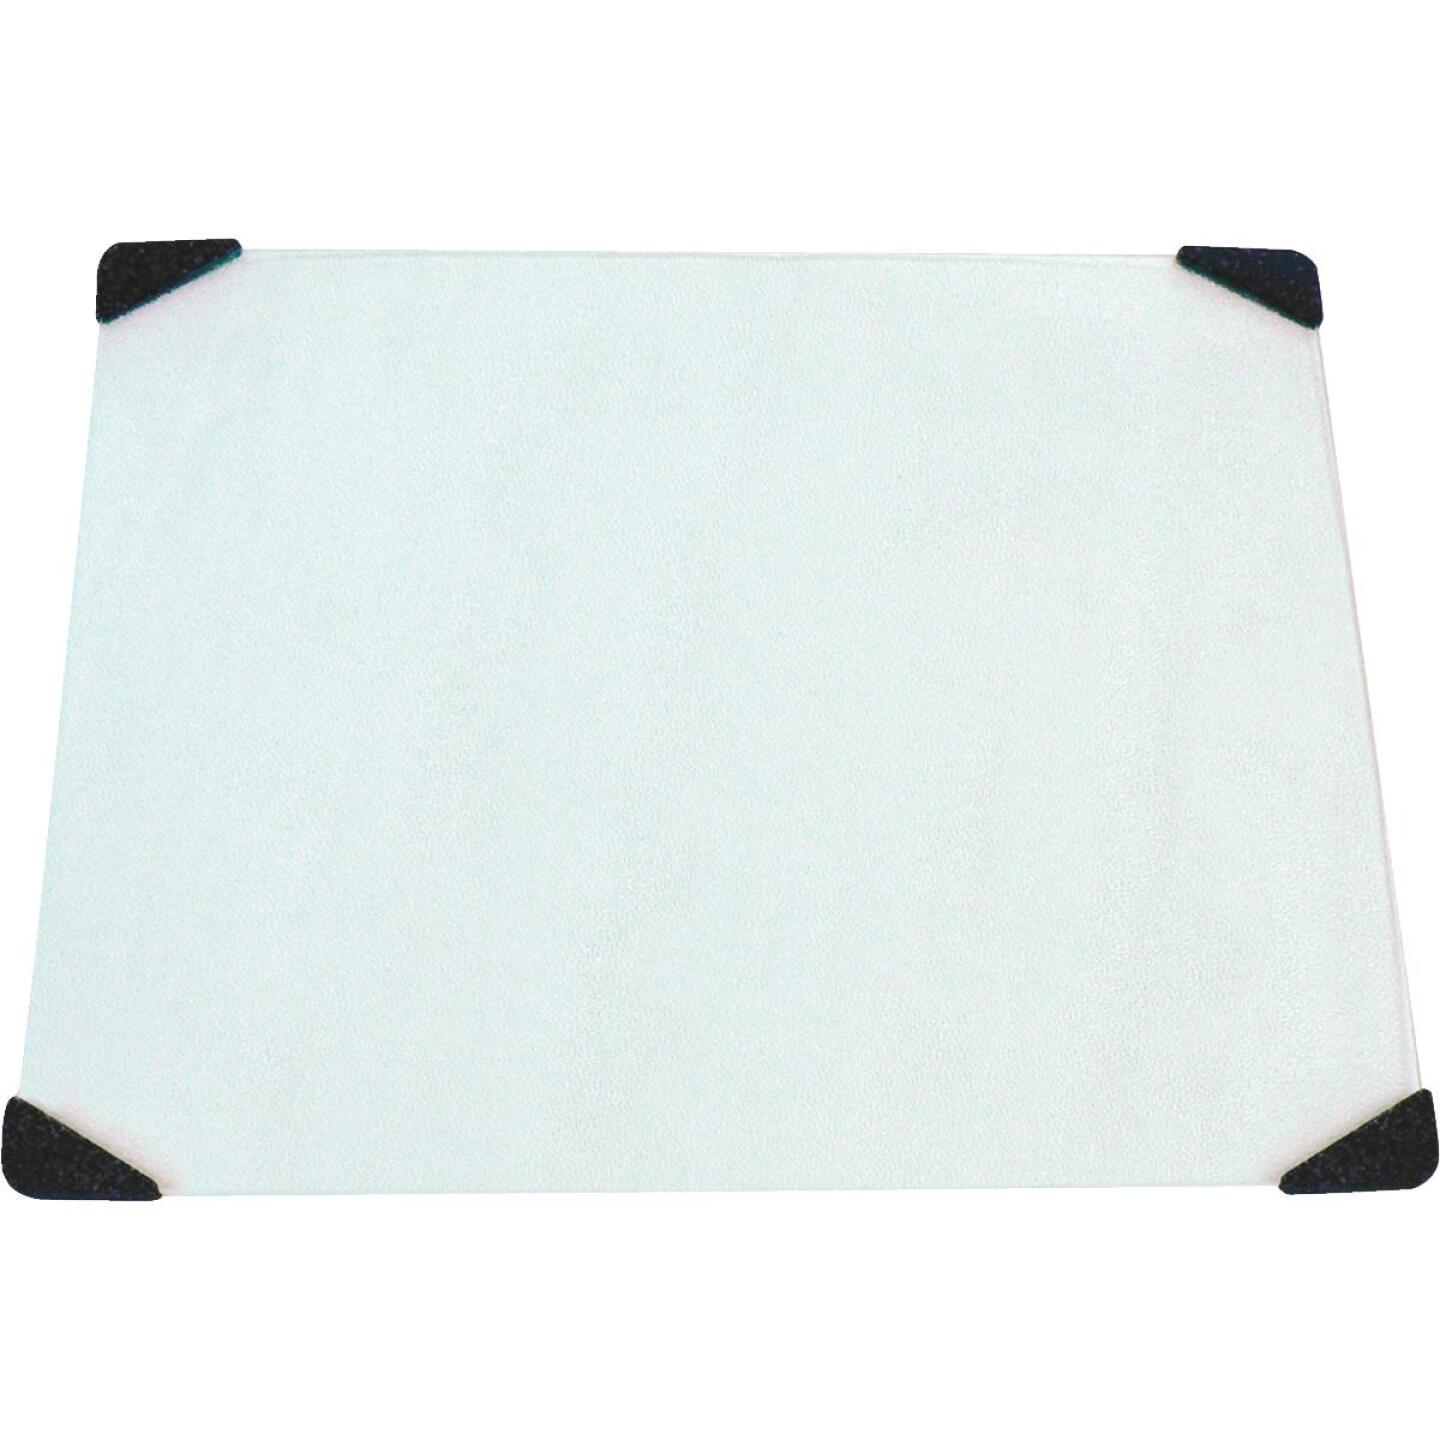 Grande Epicure 16 In. X 20 In. Tempered Glass Counter Saver Cutting Board Image 1